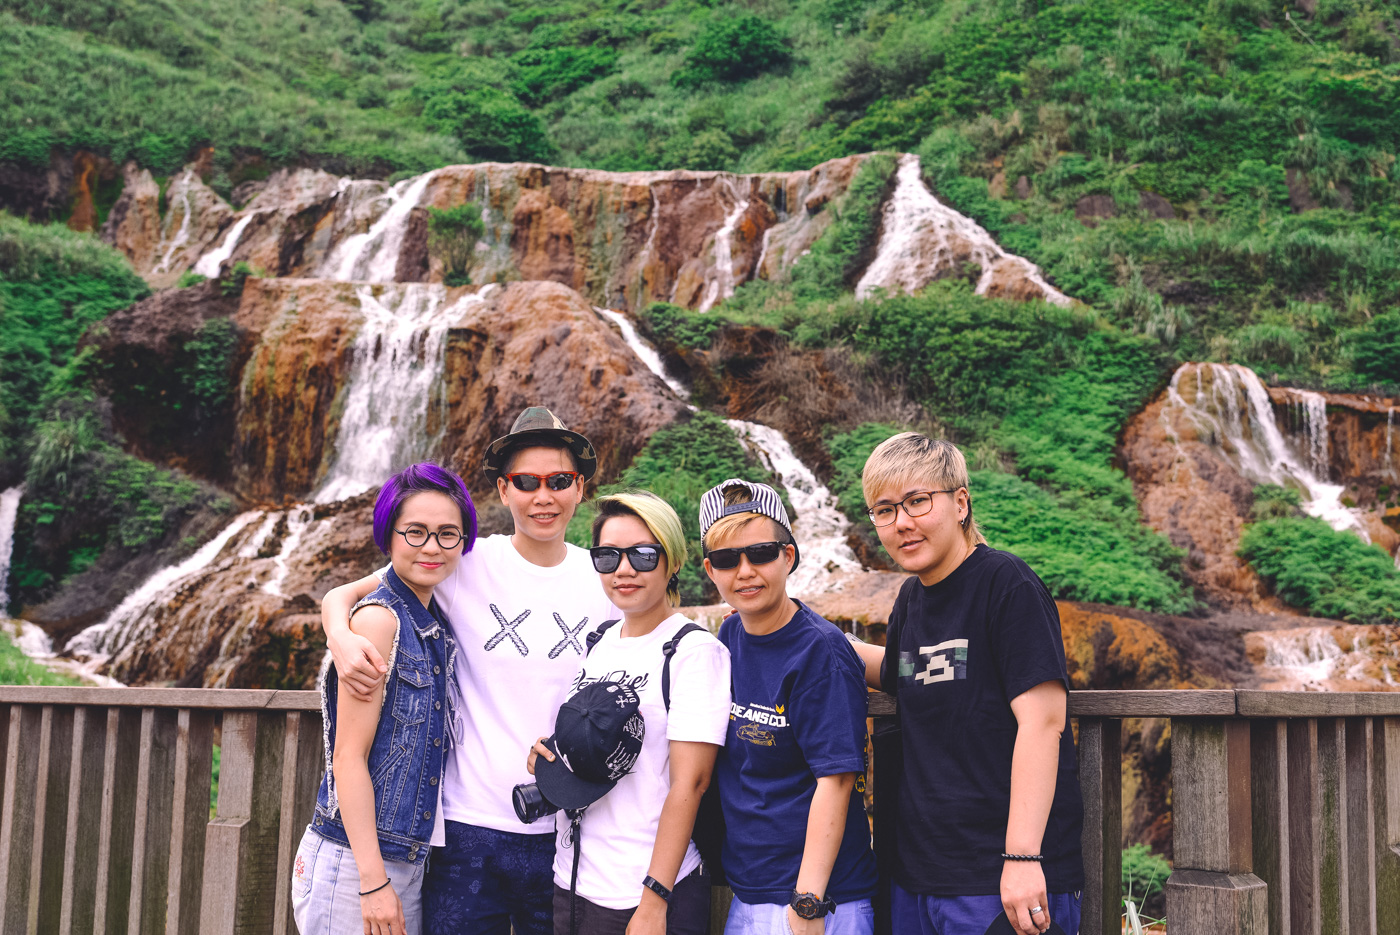 Taiwan - New Taipei City - Group shot at the Golden Waterfall